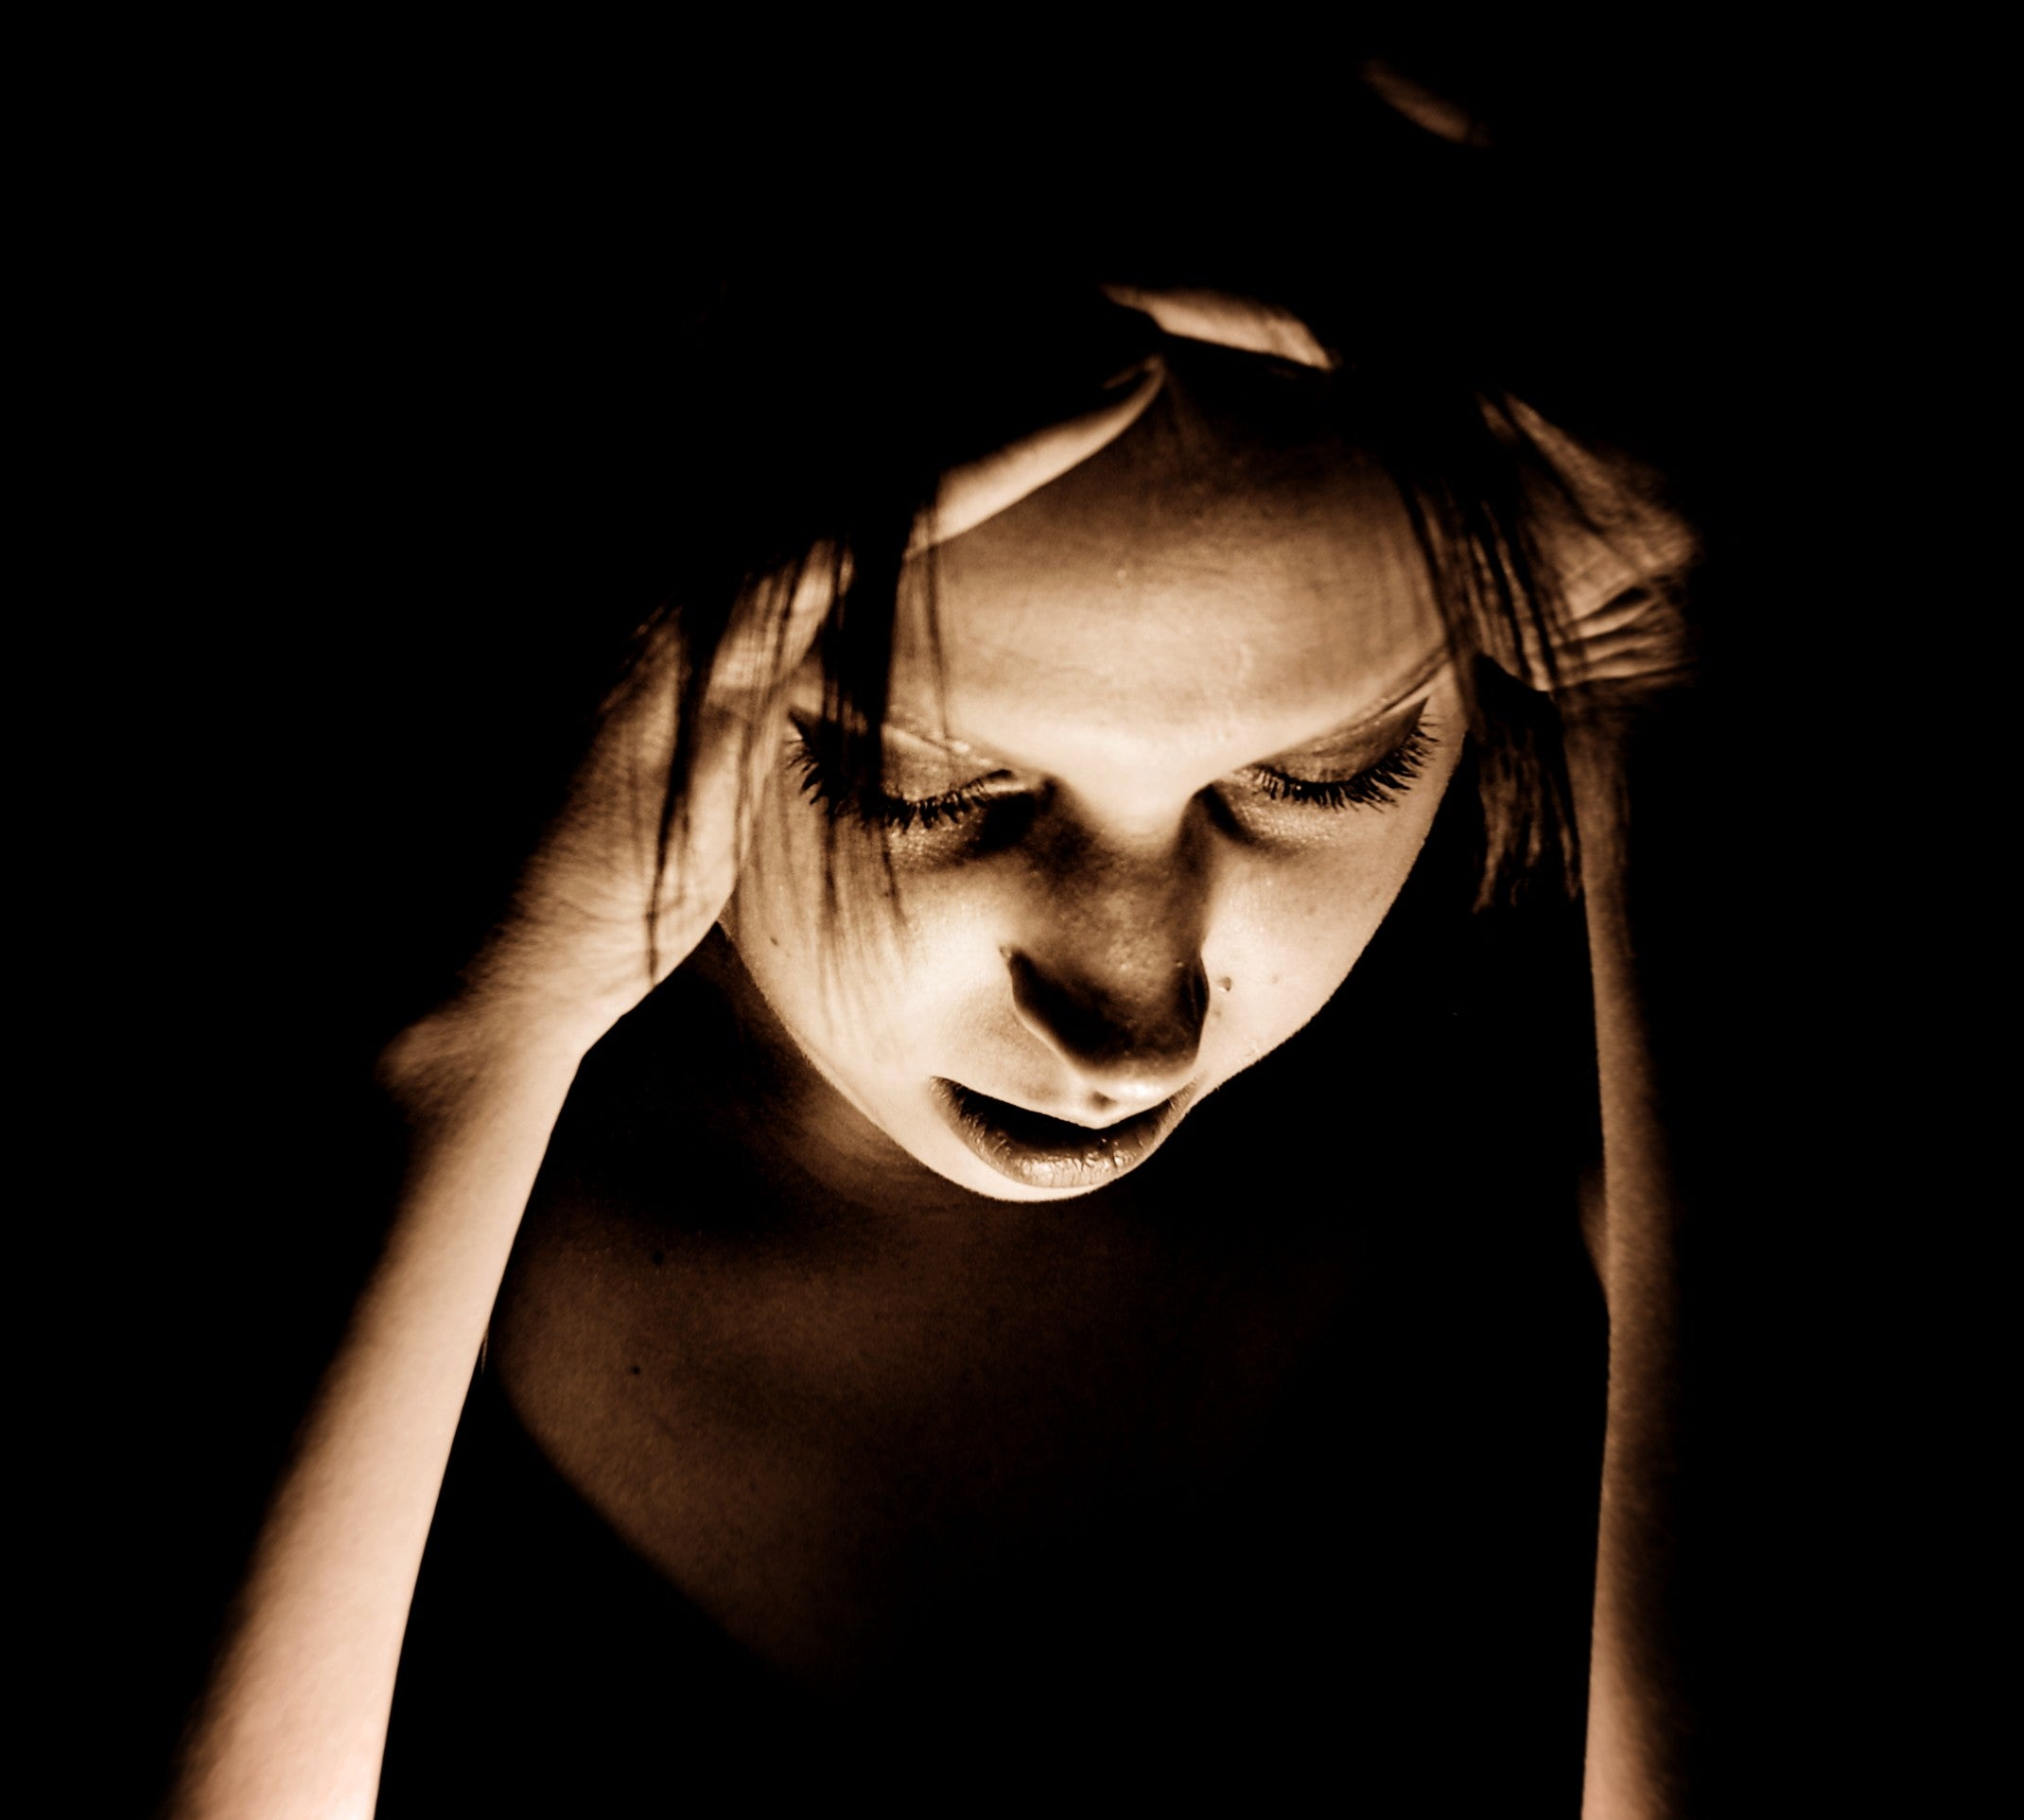 Migraine-Preventing Drugs Might Be On The Horizon